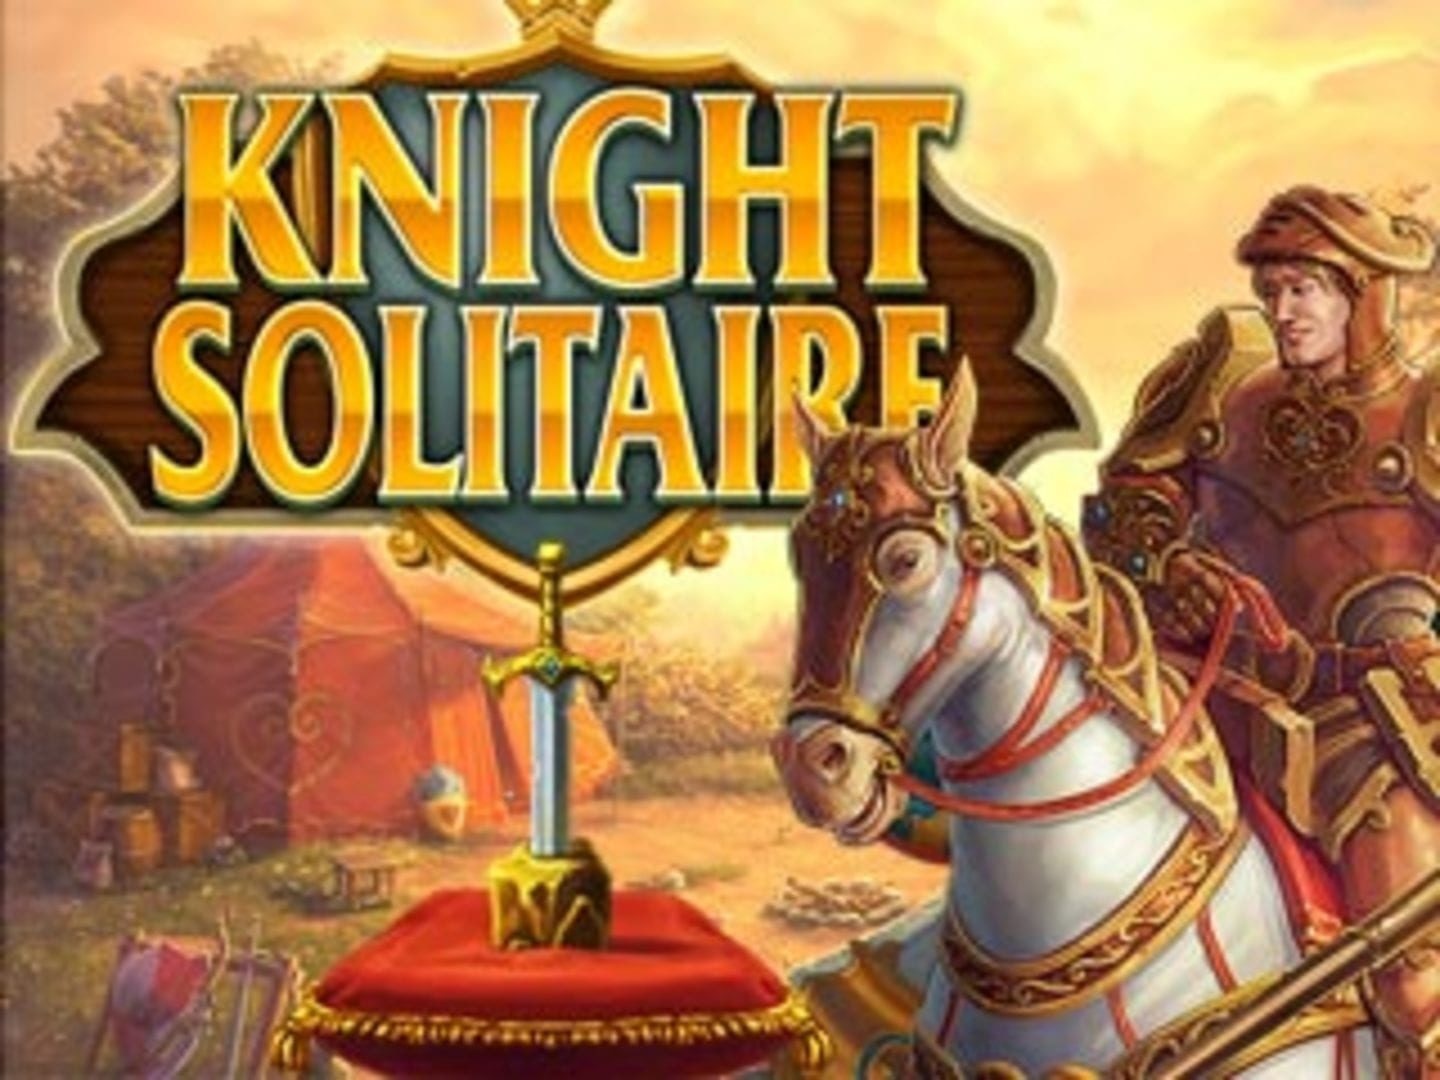 buy Knight Solitaire cd key for all platform